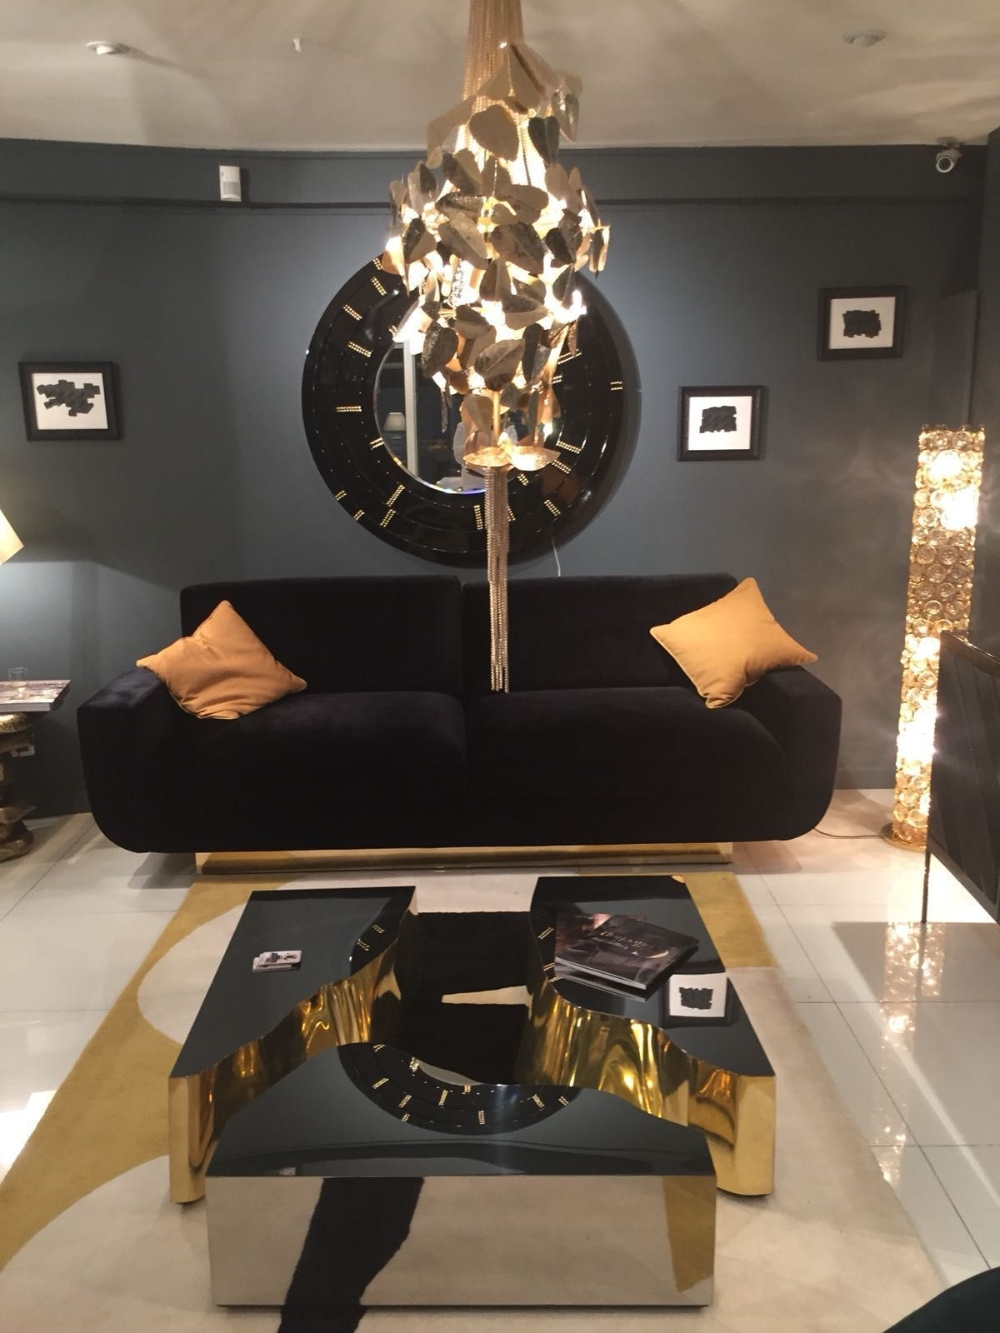 Design Tour Top Showrooms to Visit While in Maison et Objet Paris (6) maison et objet Design Tour: Top Showrooms to Visit While in Maison et Objet Paris Design Tour Top Showrooms to Visit While in Maison et Objet Paris 6